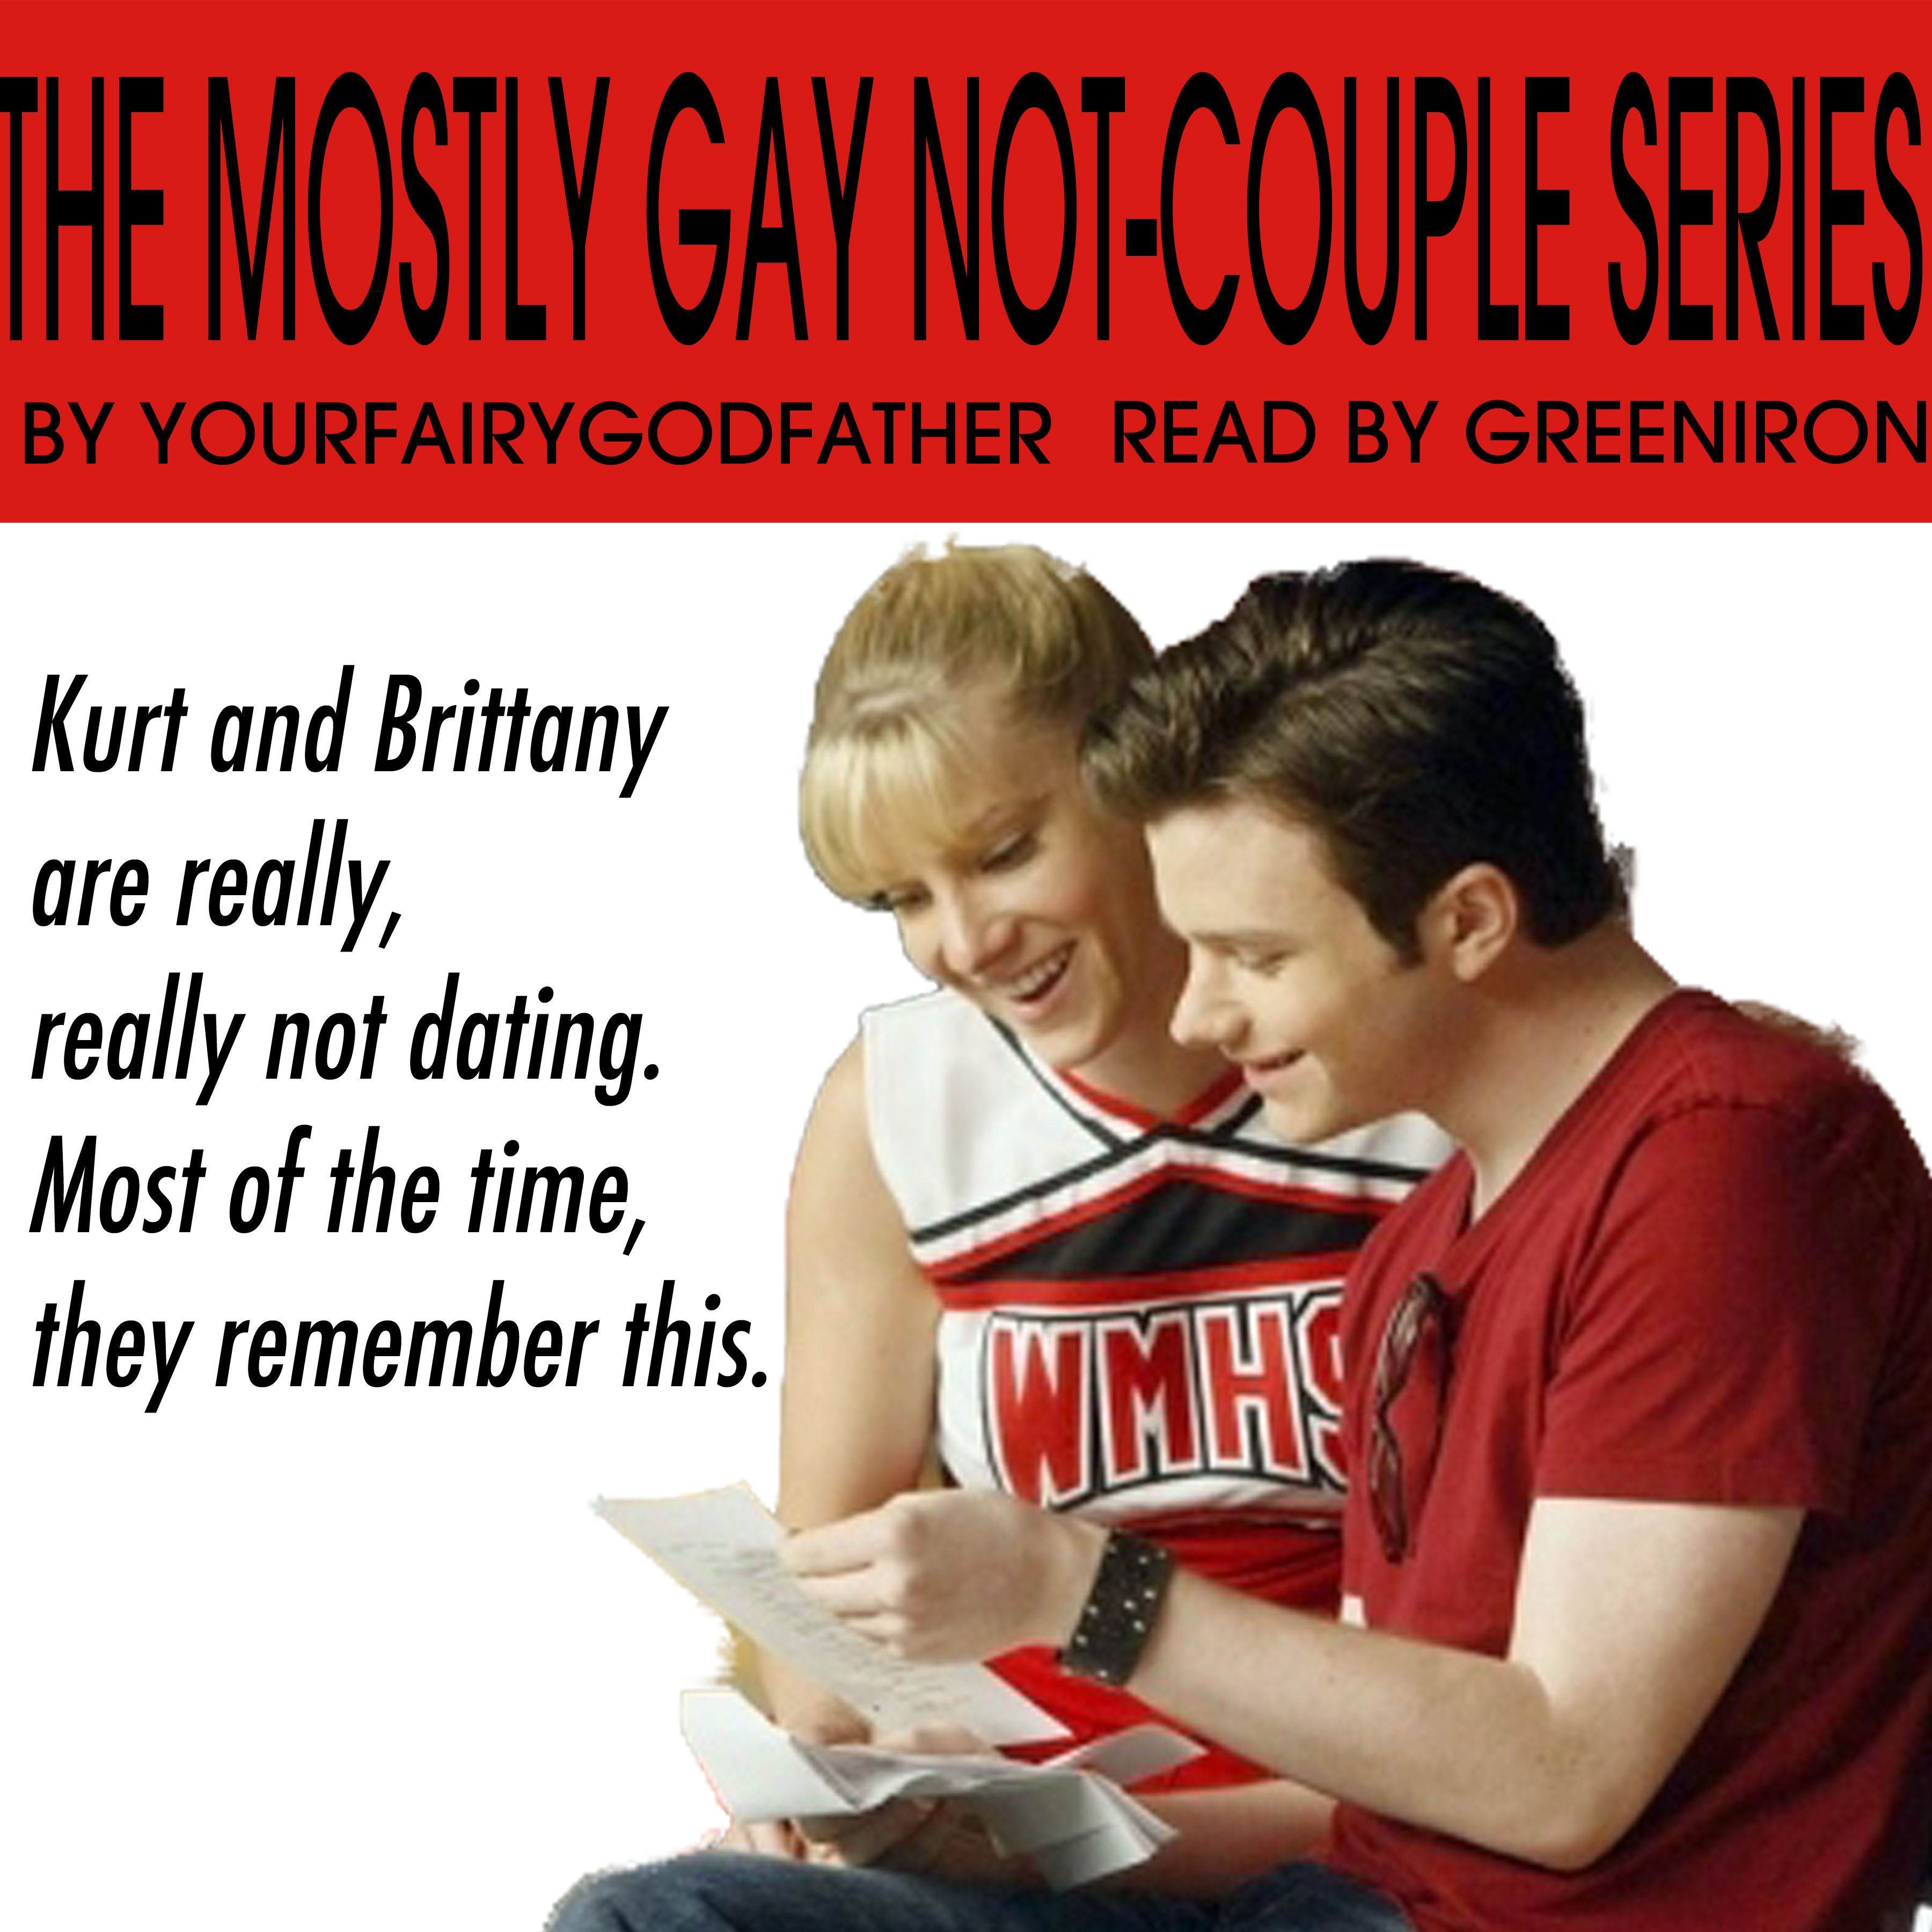 Mostly Gay Not Couple series cover